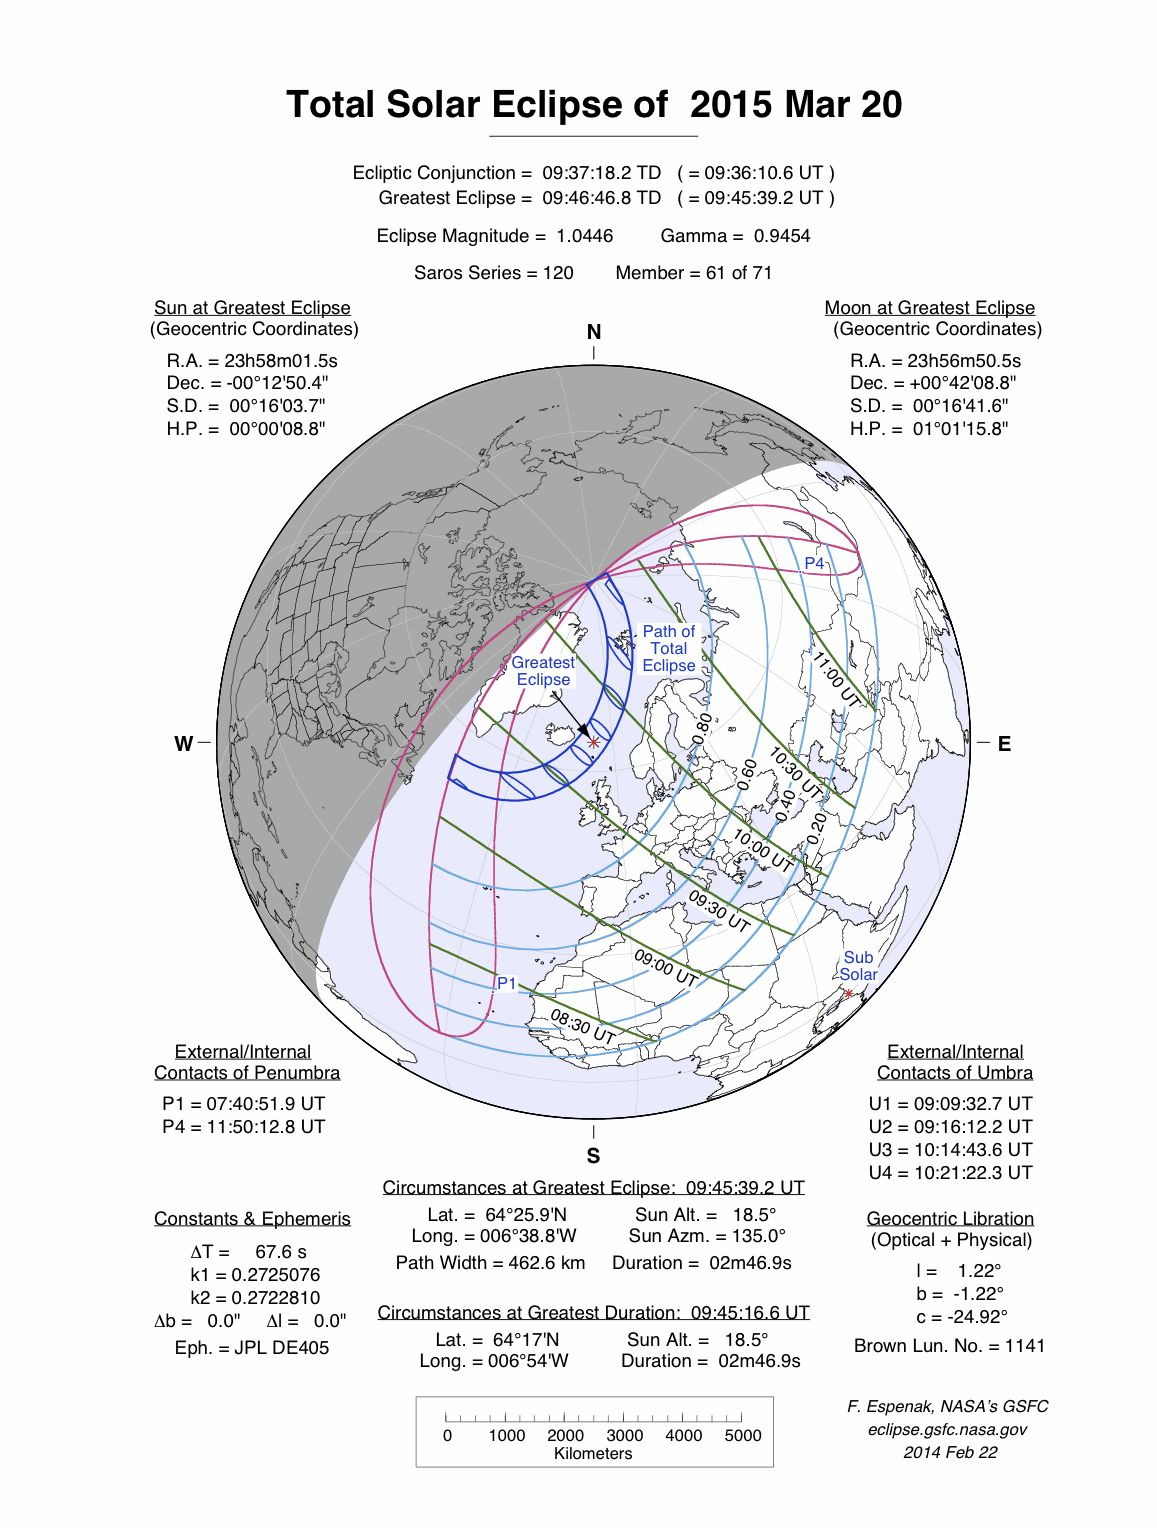 This map shows the predicted path of the total solar eclipse for March 20, 2015. Credit: Fred Espenak/NASA GSFC